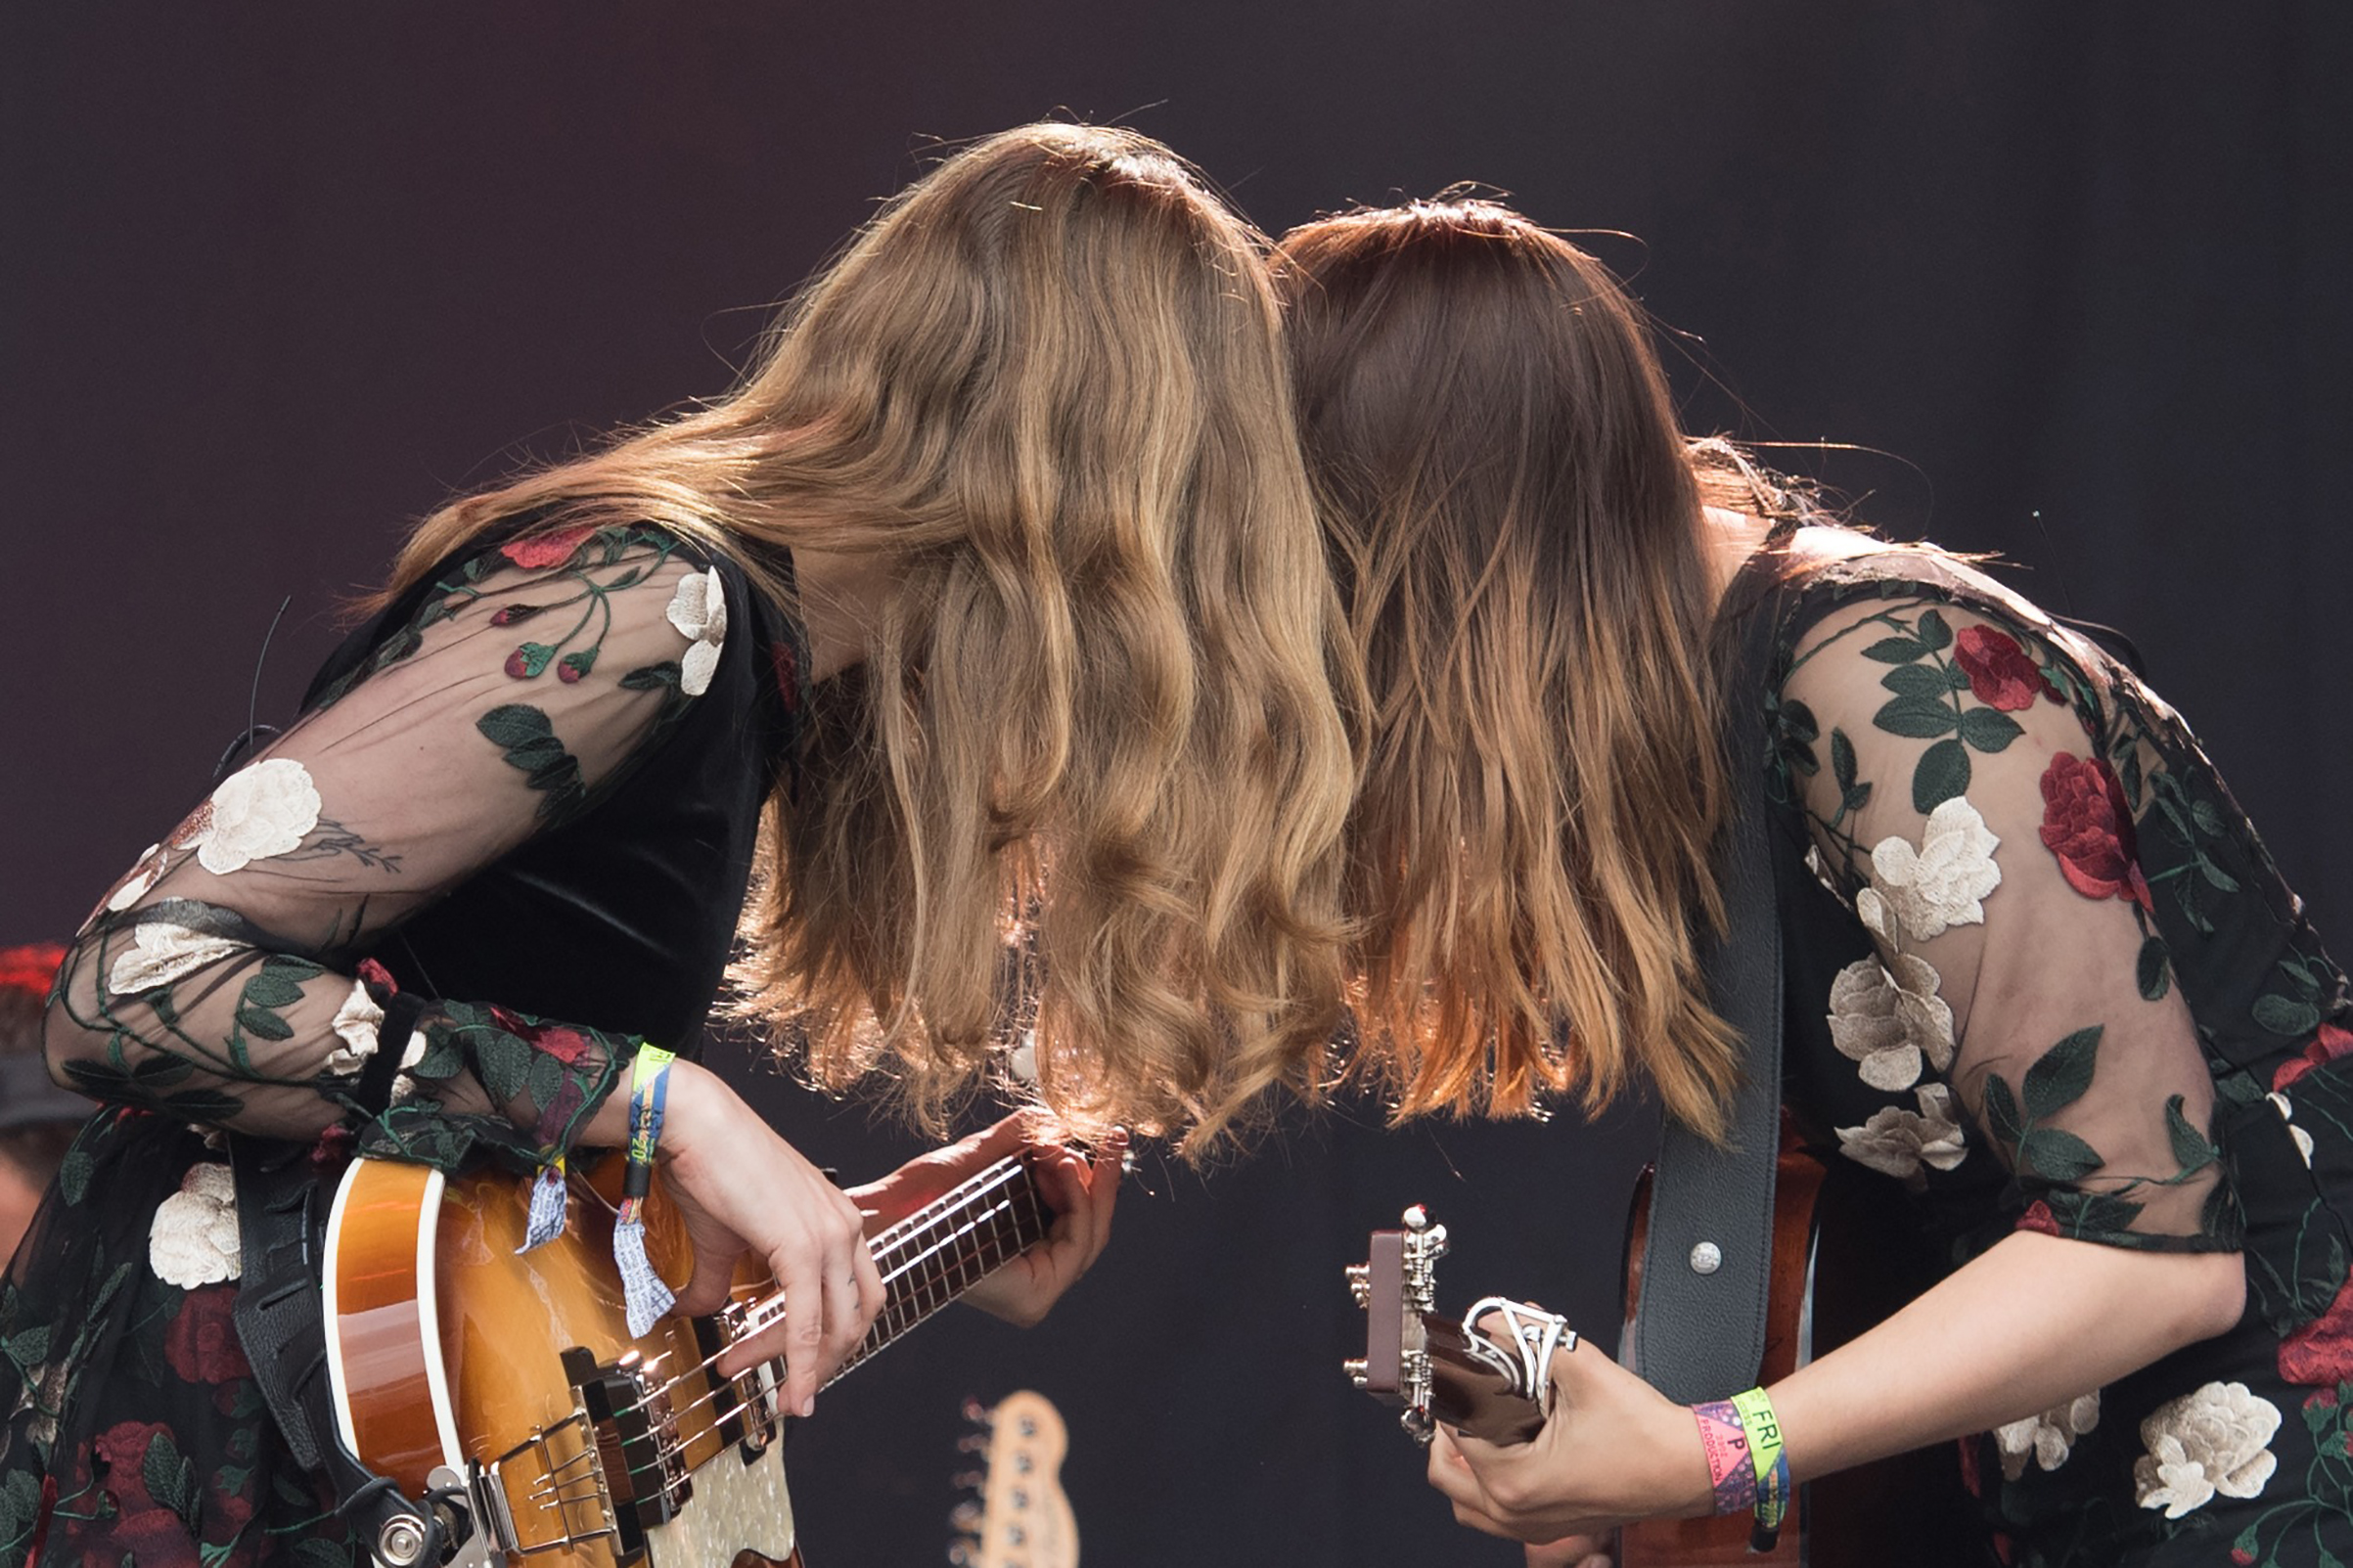 The Swedish sister duo First Aid Kit